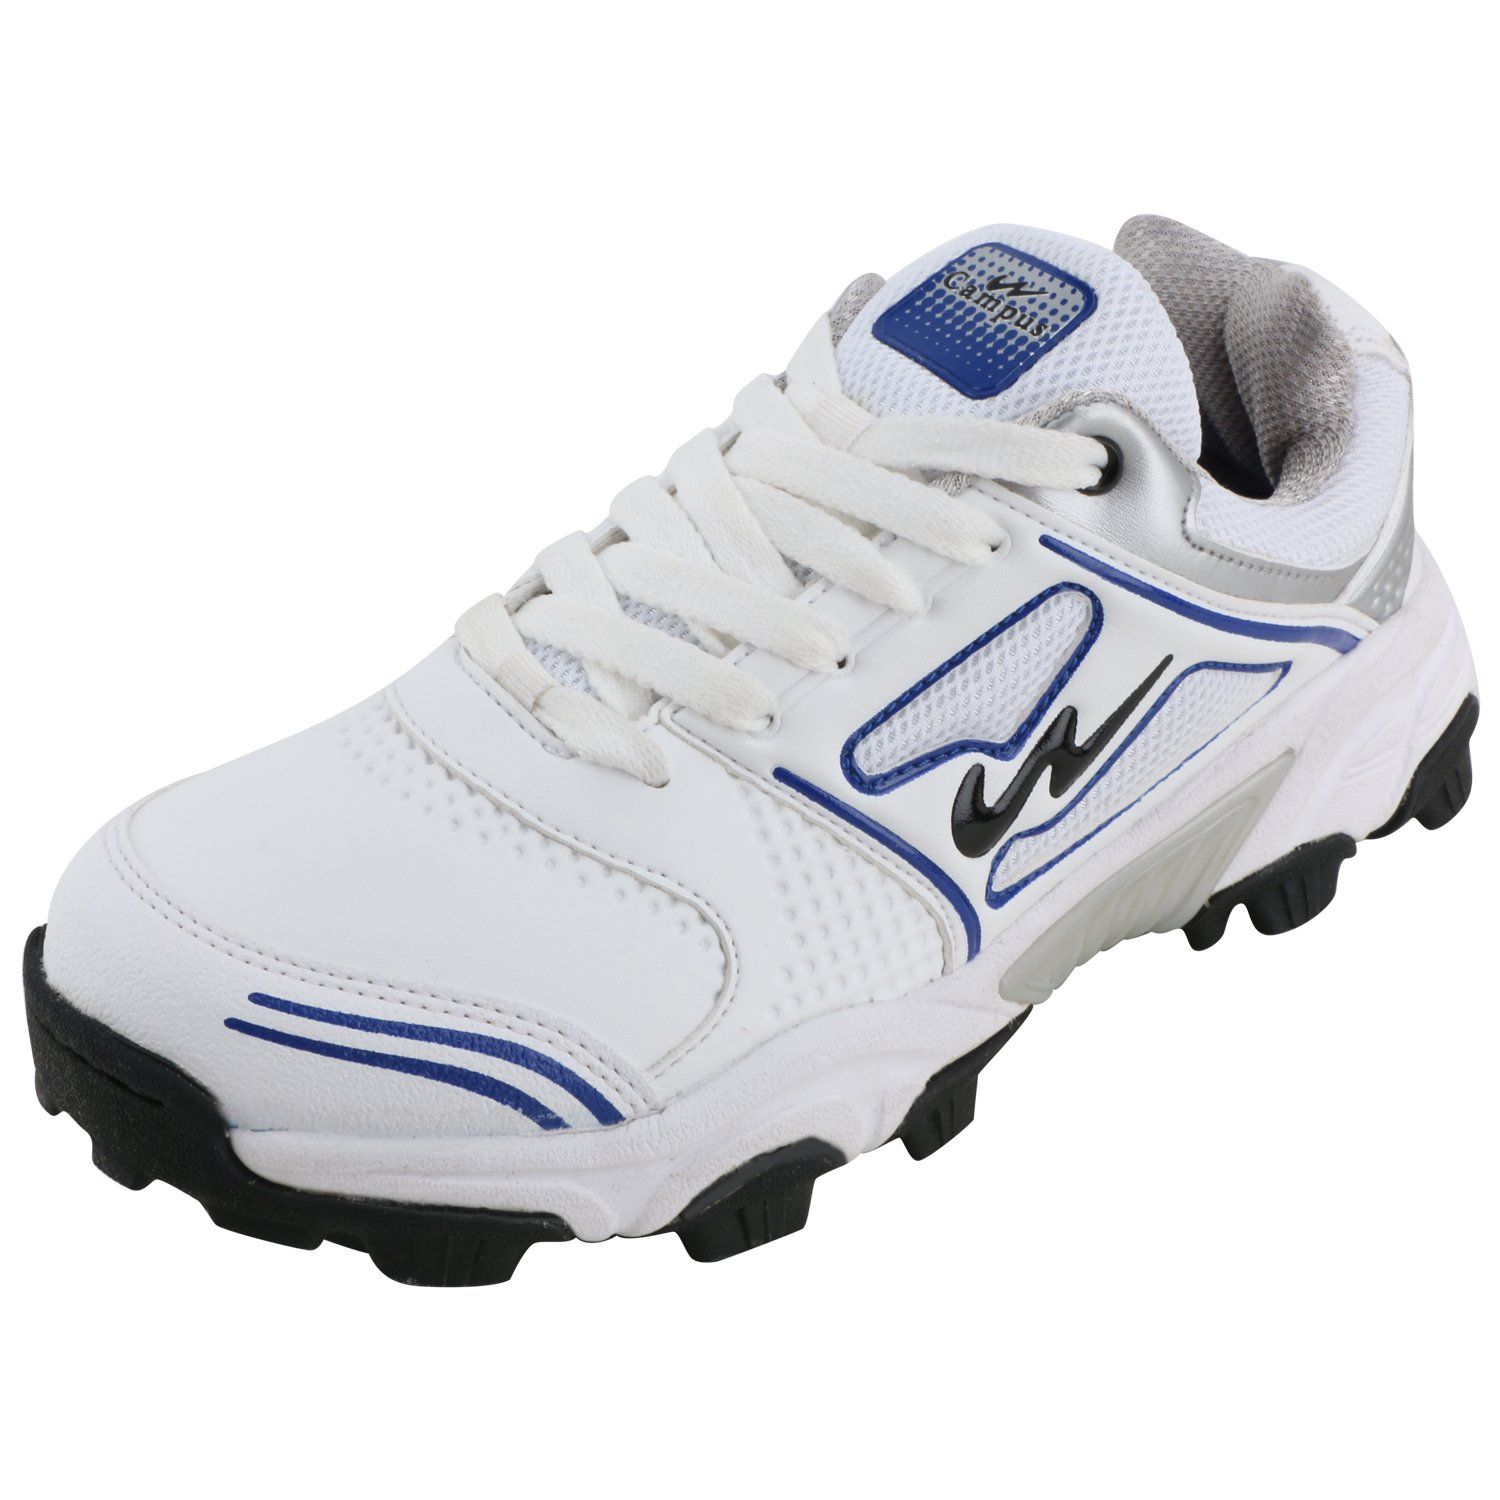 Silver Synthetic Cricket Shoes